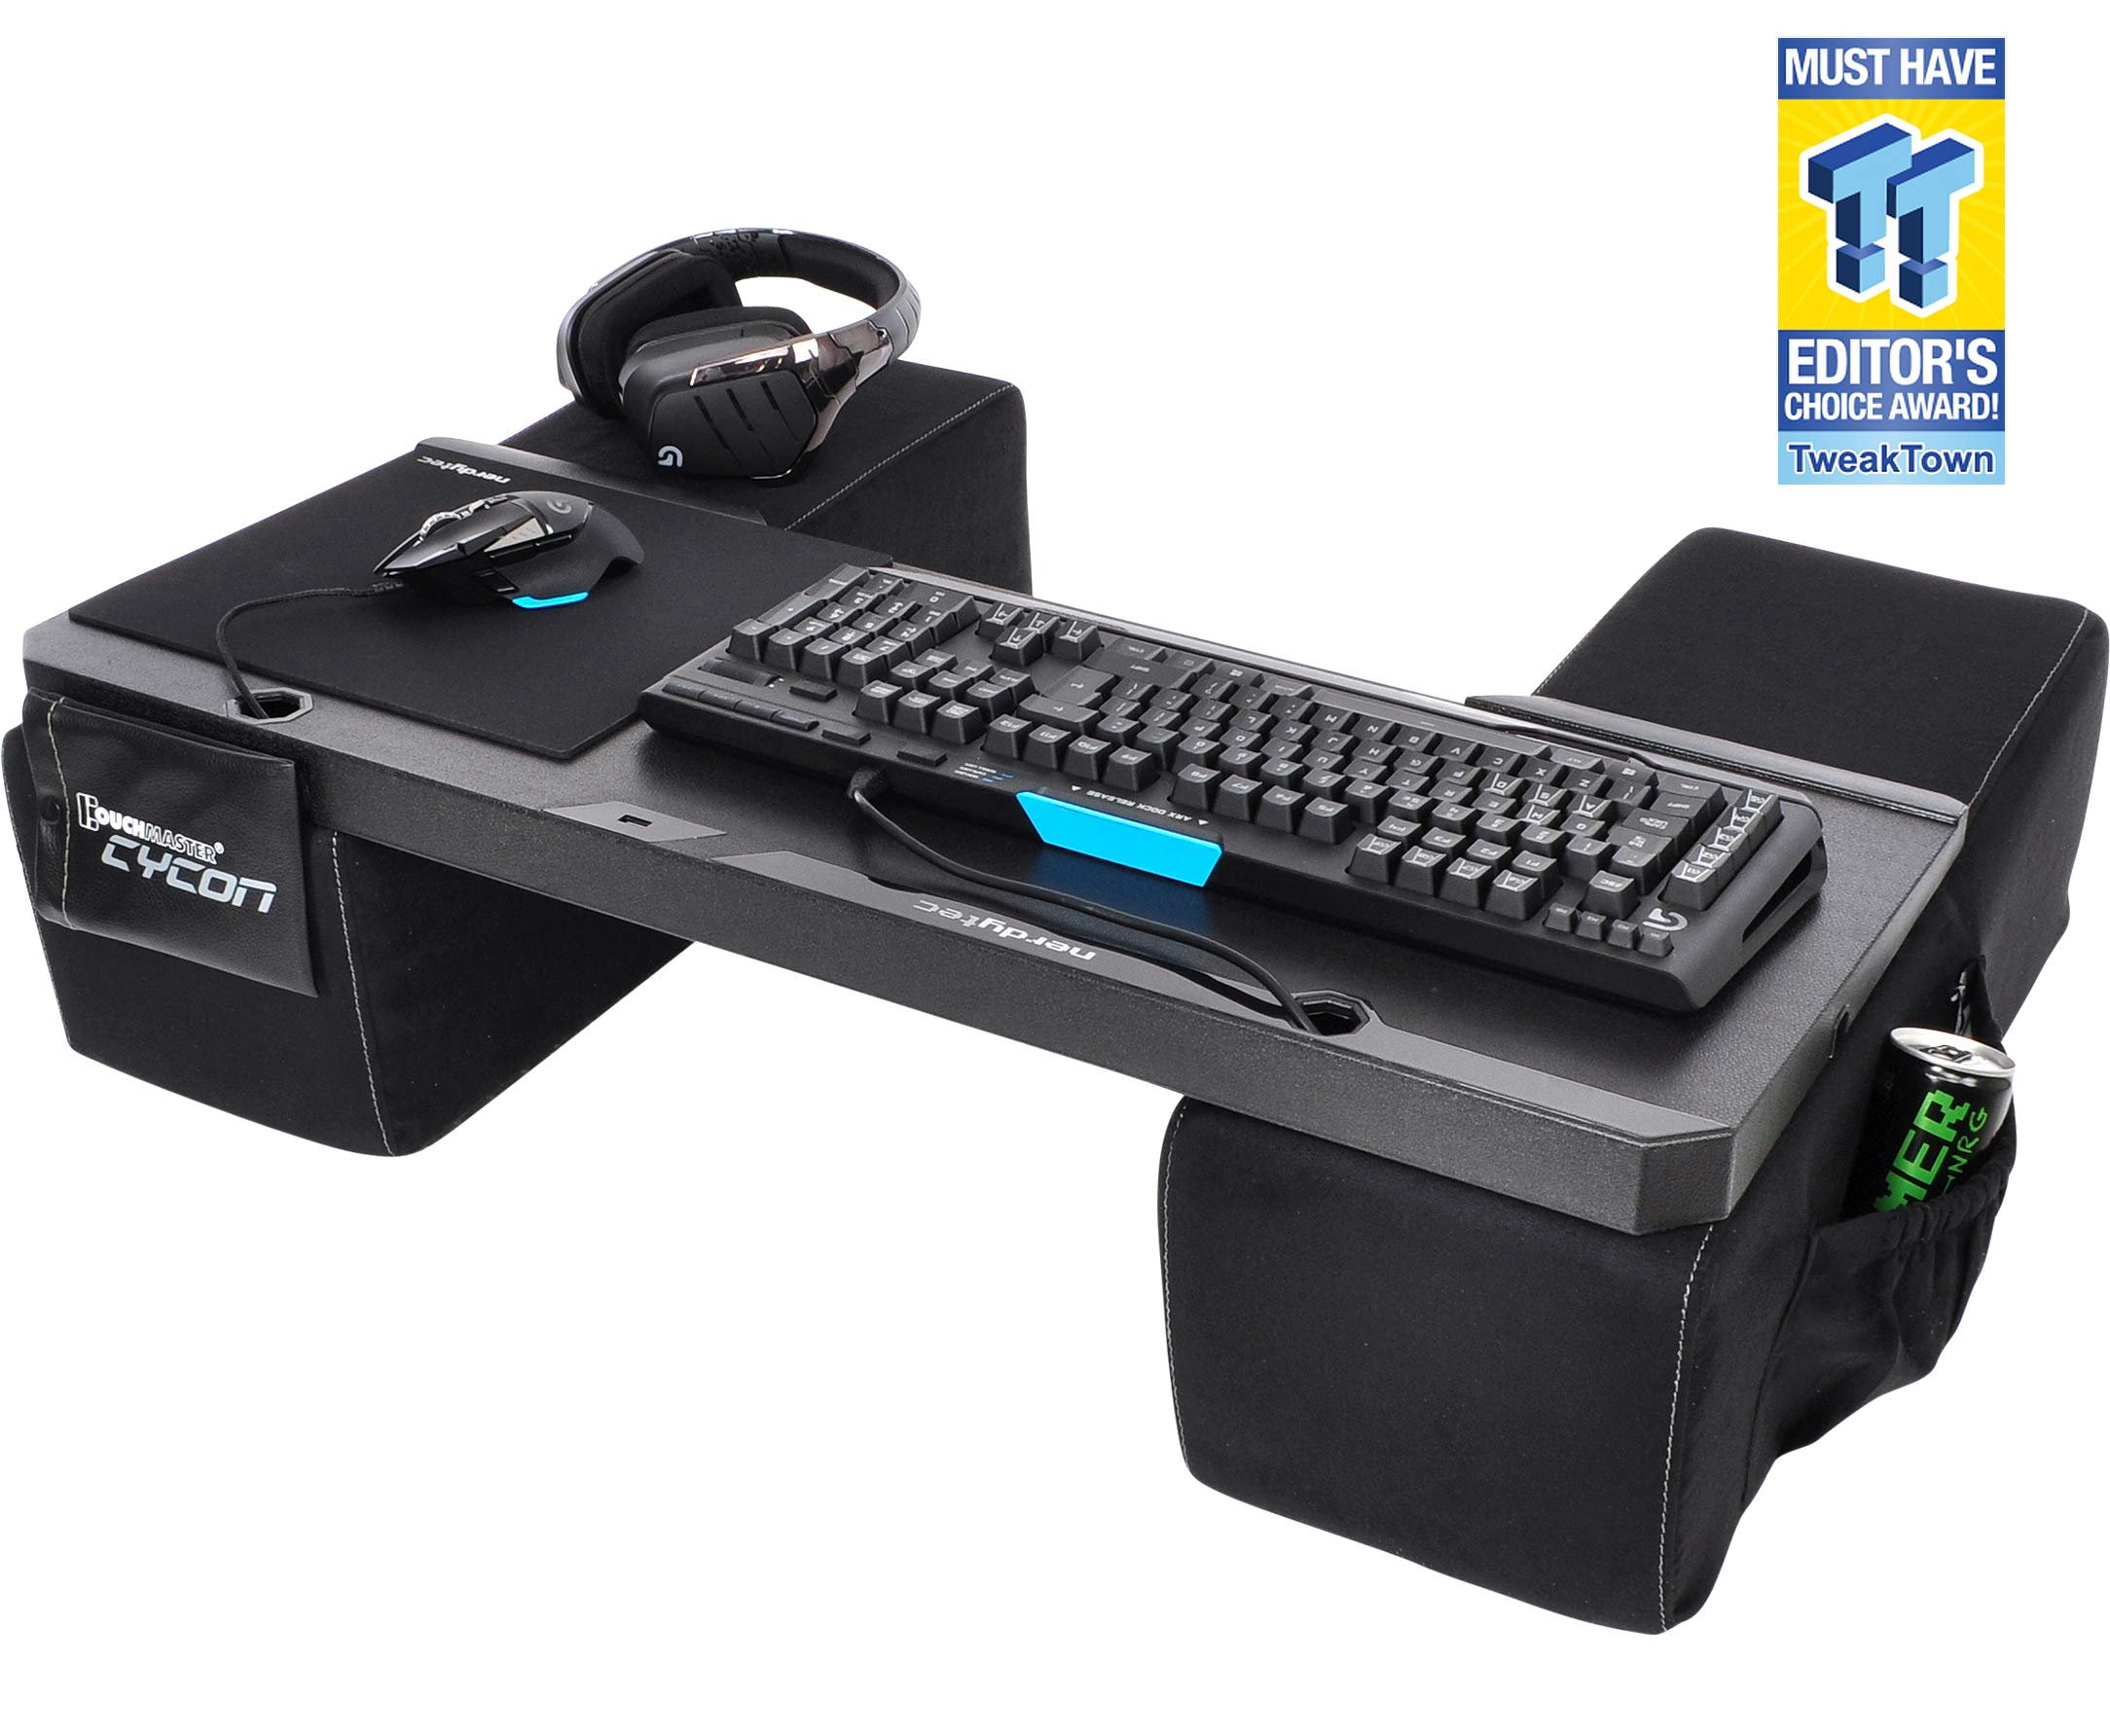 Couchmaster CYCON - Couch Gaming Lapboard/Lapdesk for Keyboard/Mouse (PC / PS4 / XboxOne) incl. Ergonomic Cushions, Mousepad, 5m Cable (Black Edition) by Couchmaster